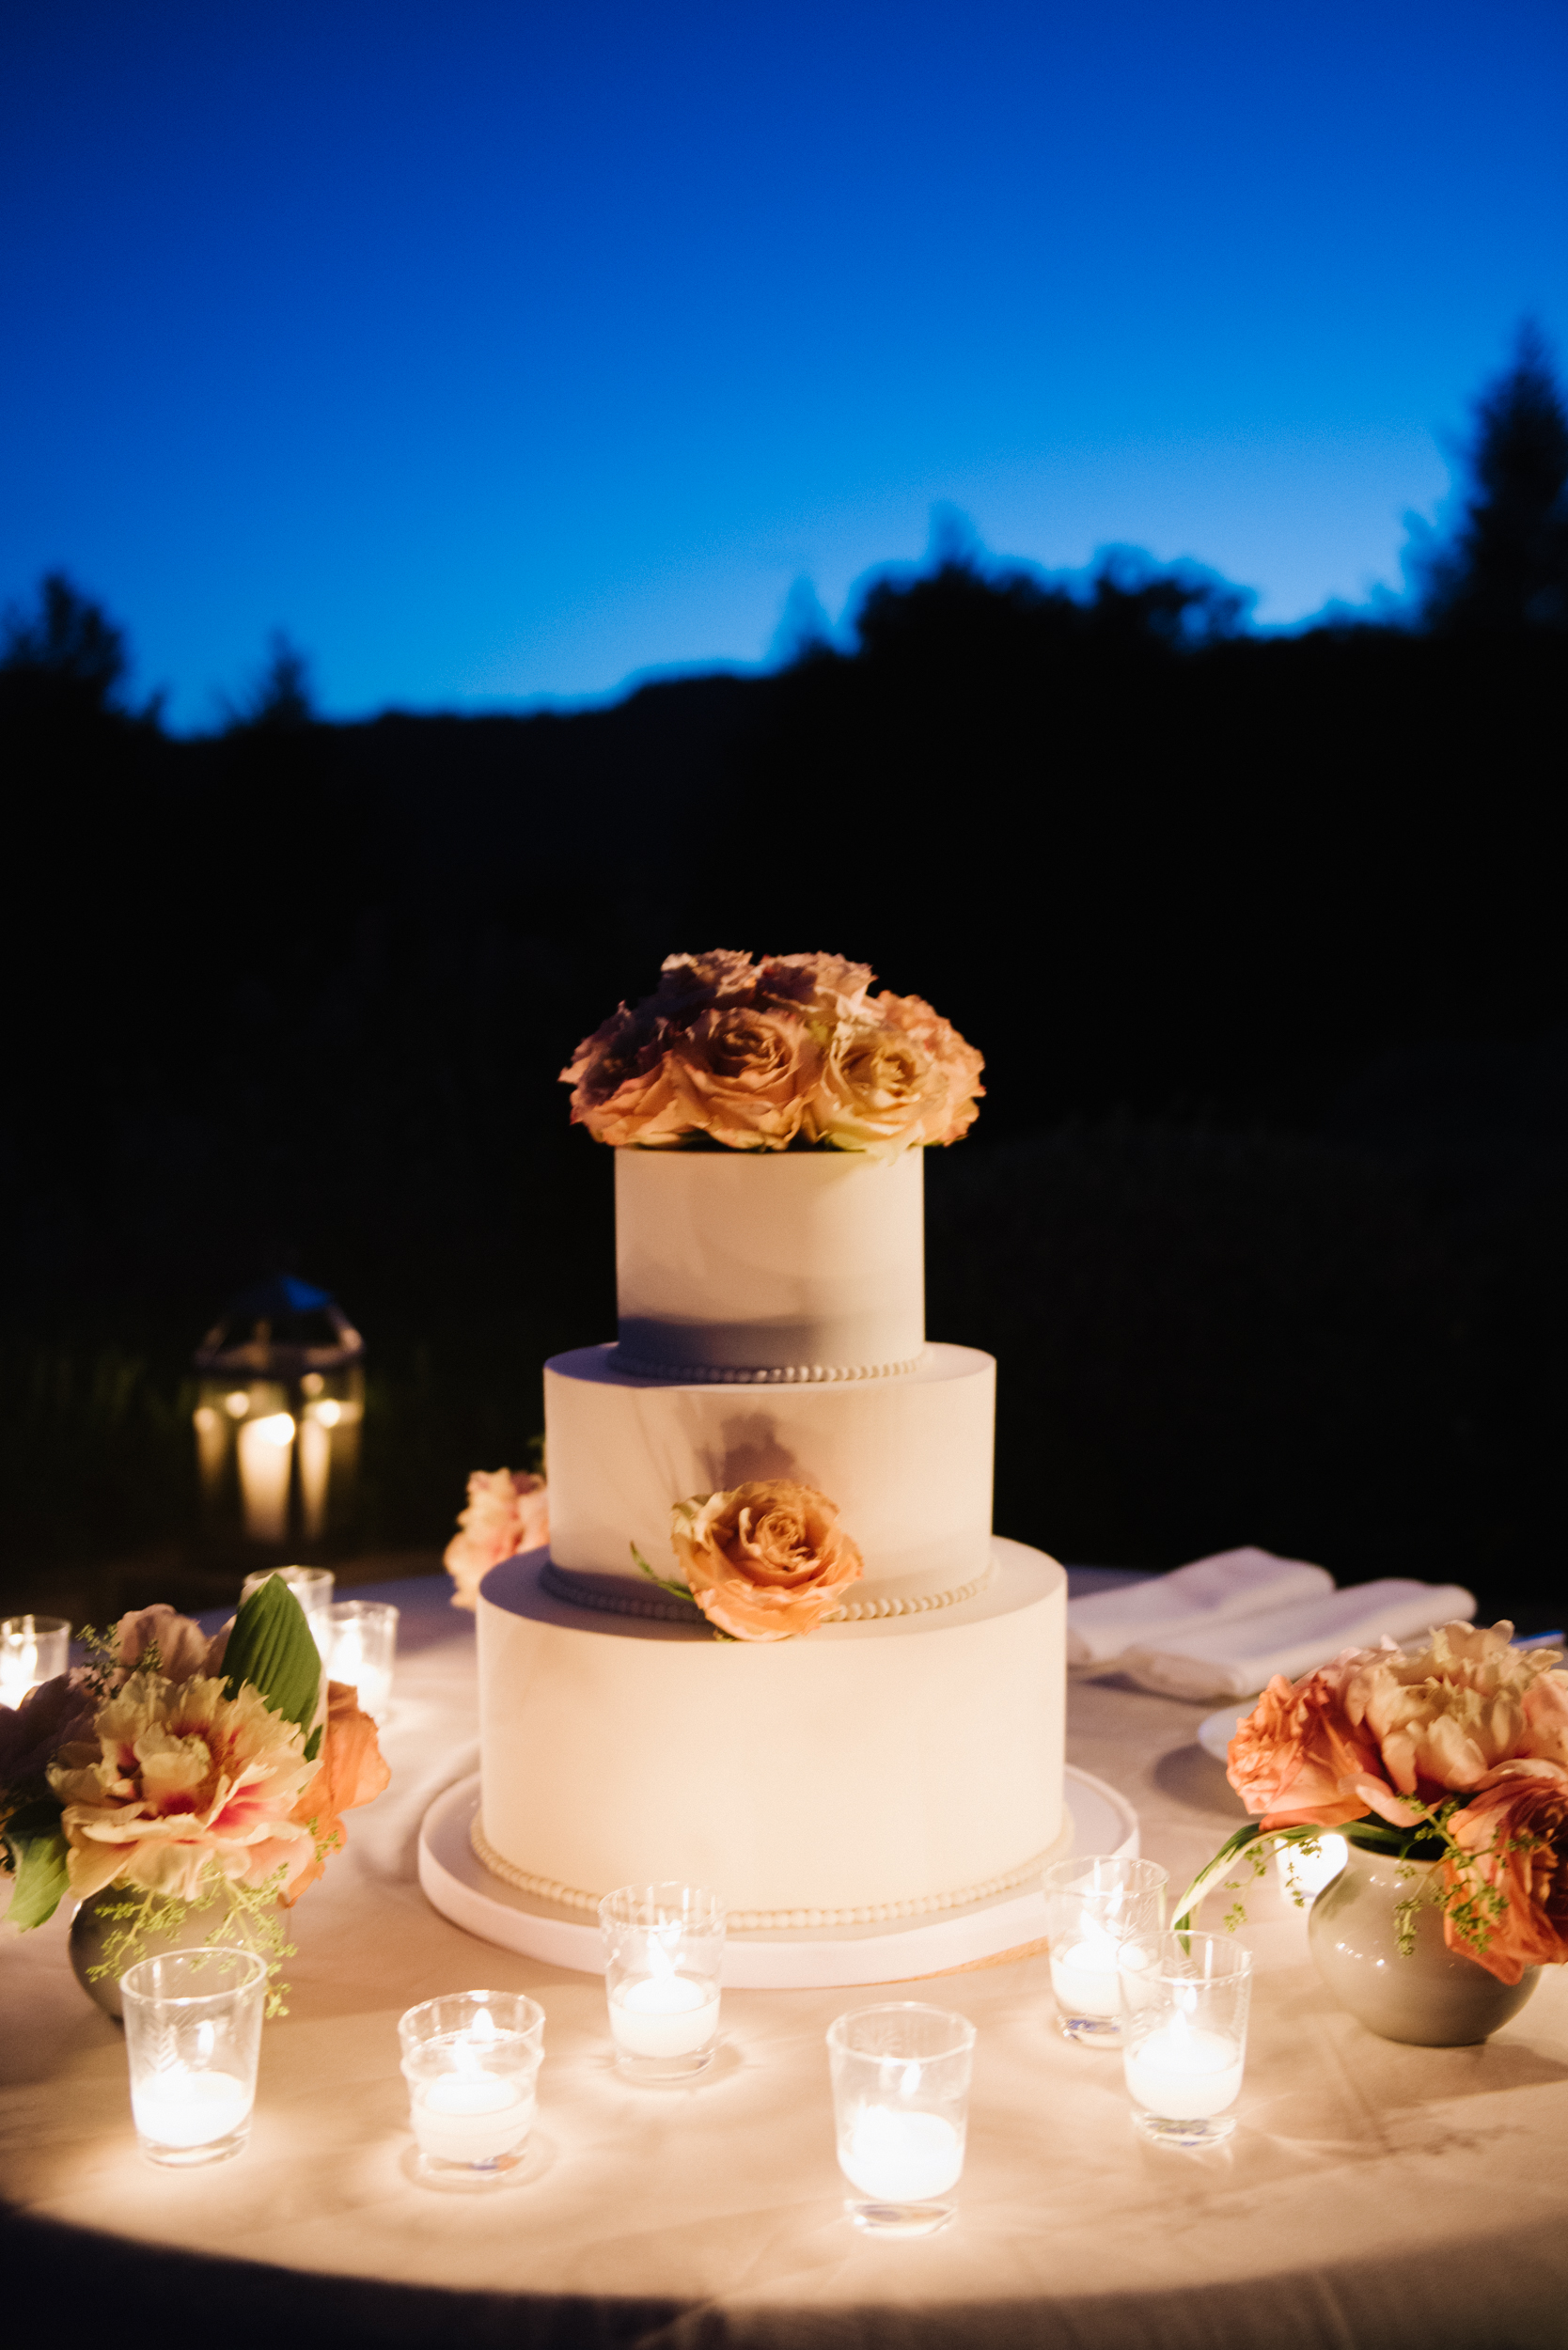 The wedding cake matched the elegance and romance of the evening, surrounded by tea lights and blushing roses; photo by Sylvie Gil